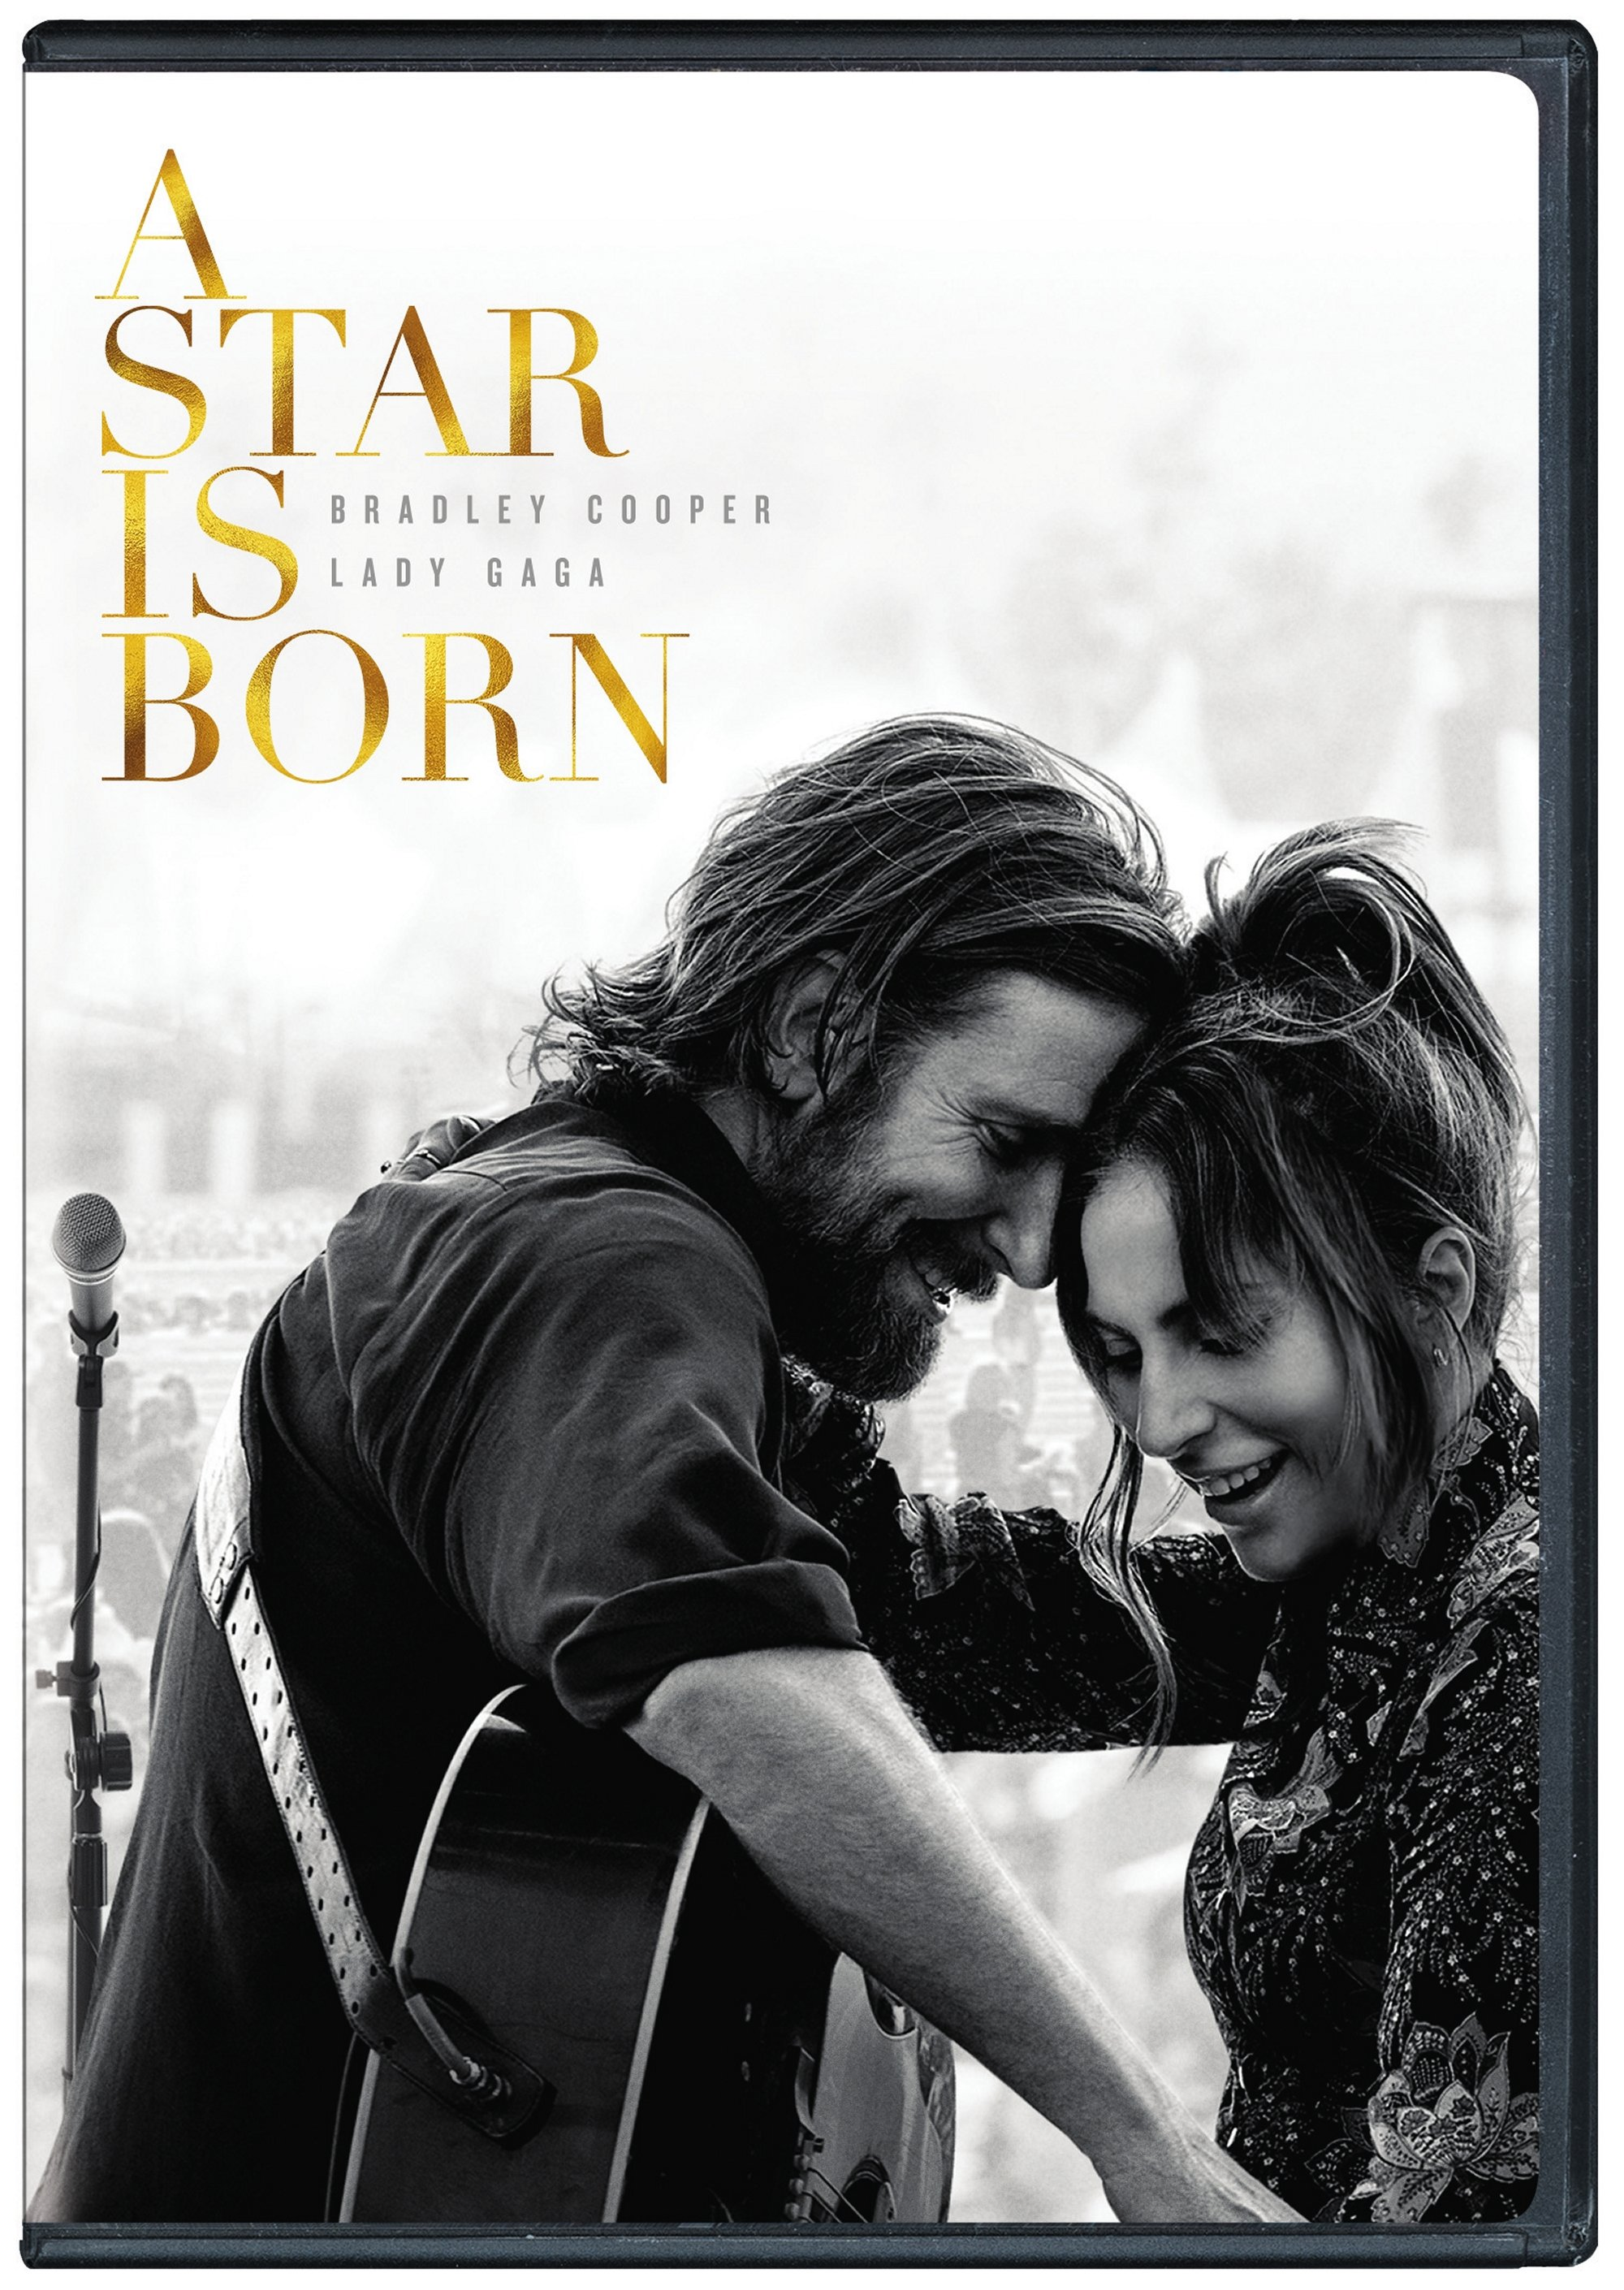 A Star Is Born Special Edition Dvd Starring Bradley Cooper Lady